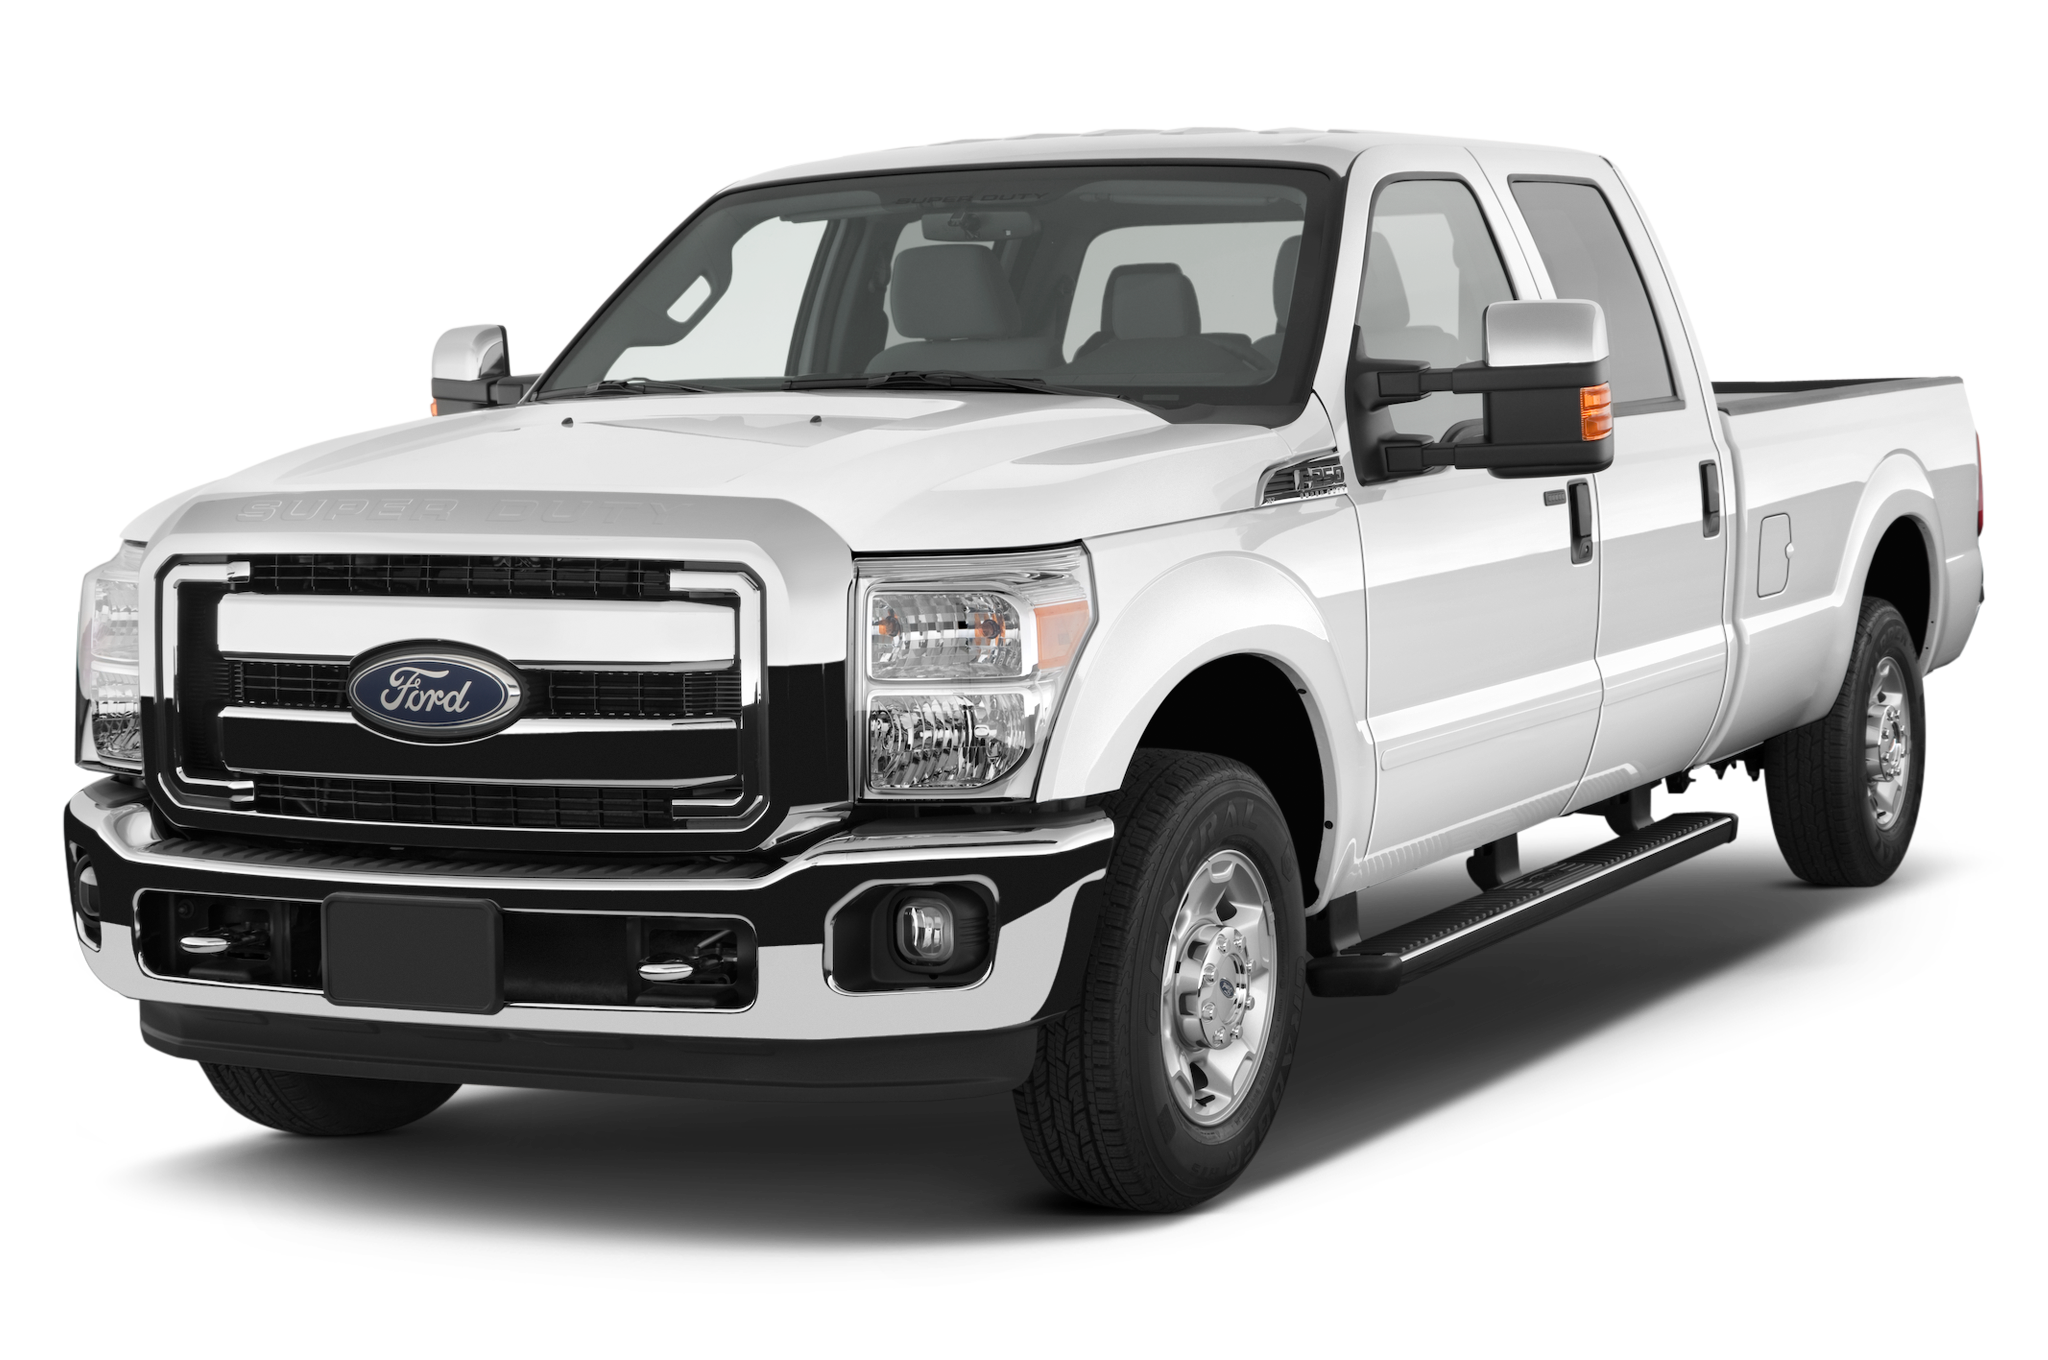 Ford Super Duty F Xlt Crew Cab In Truck Angular Front